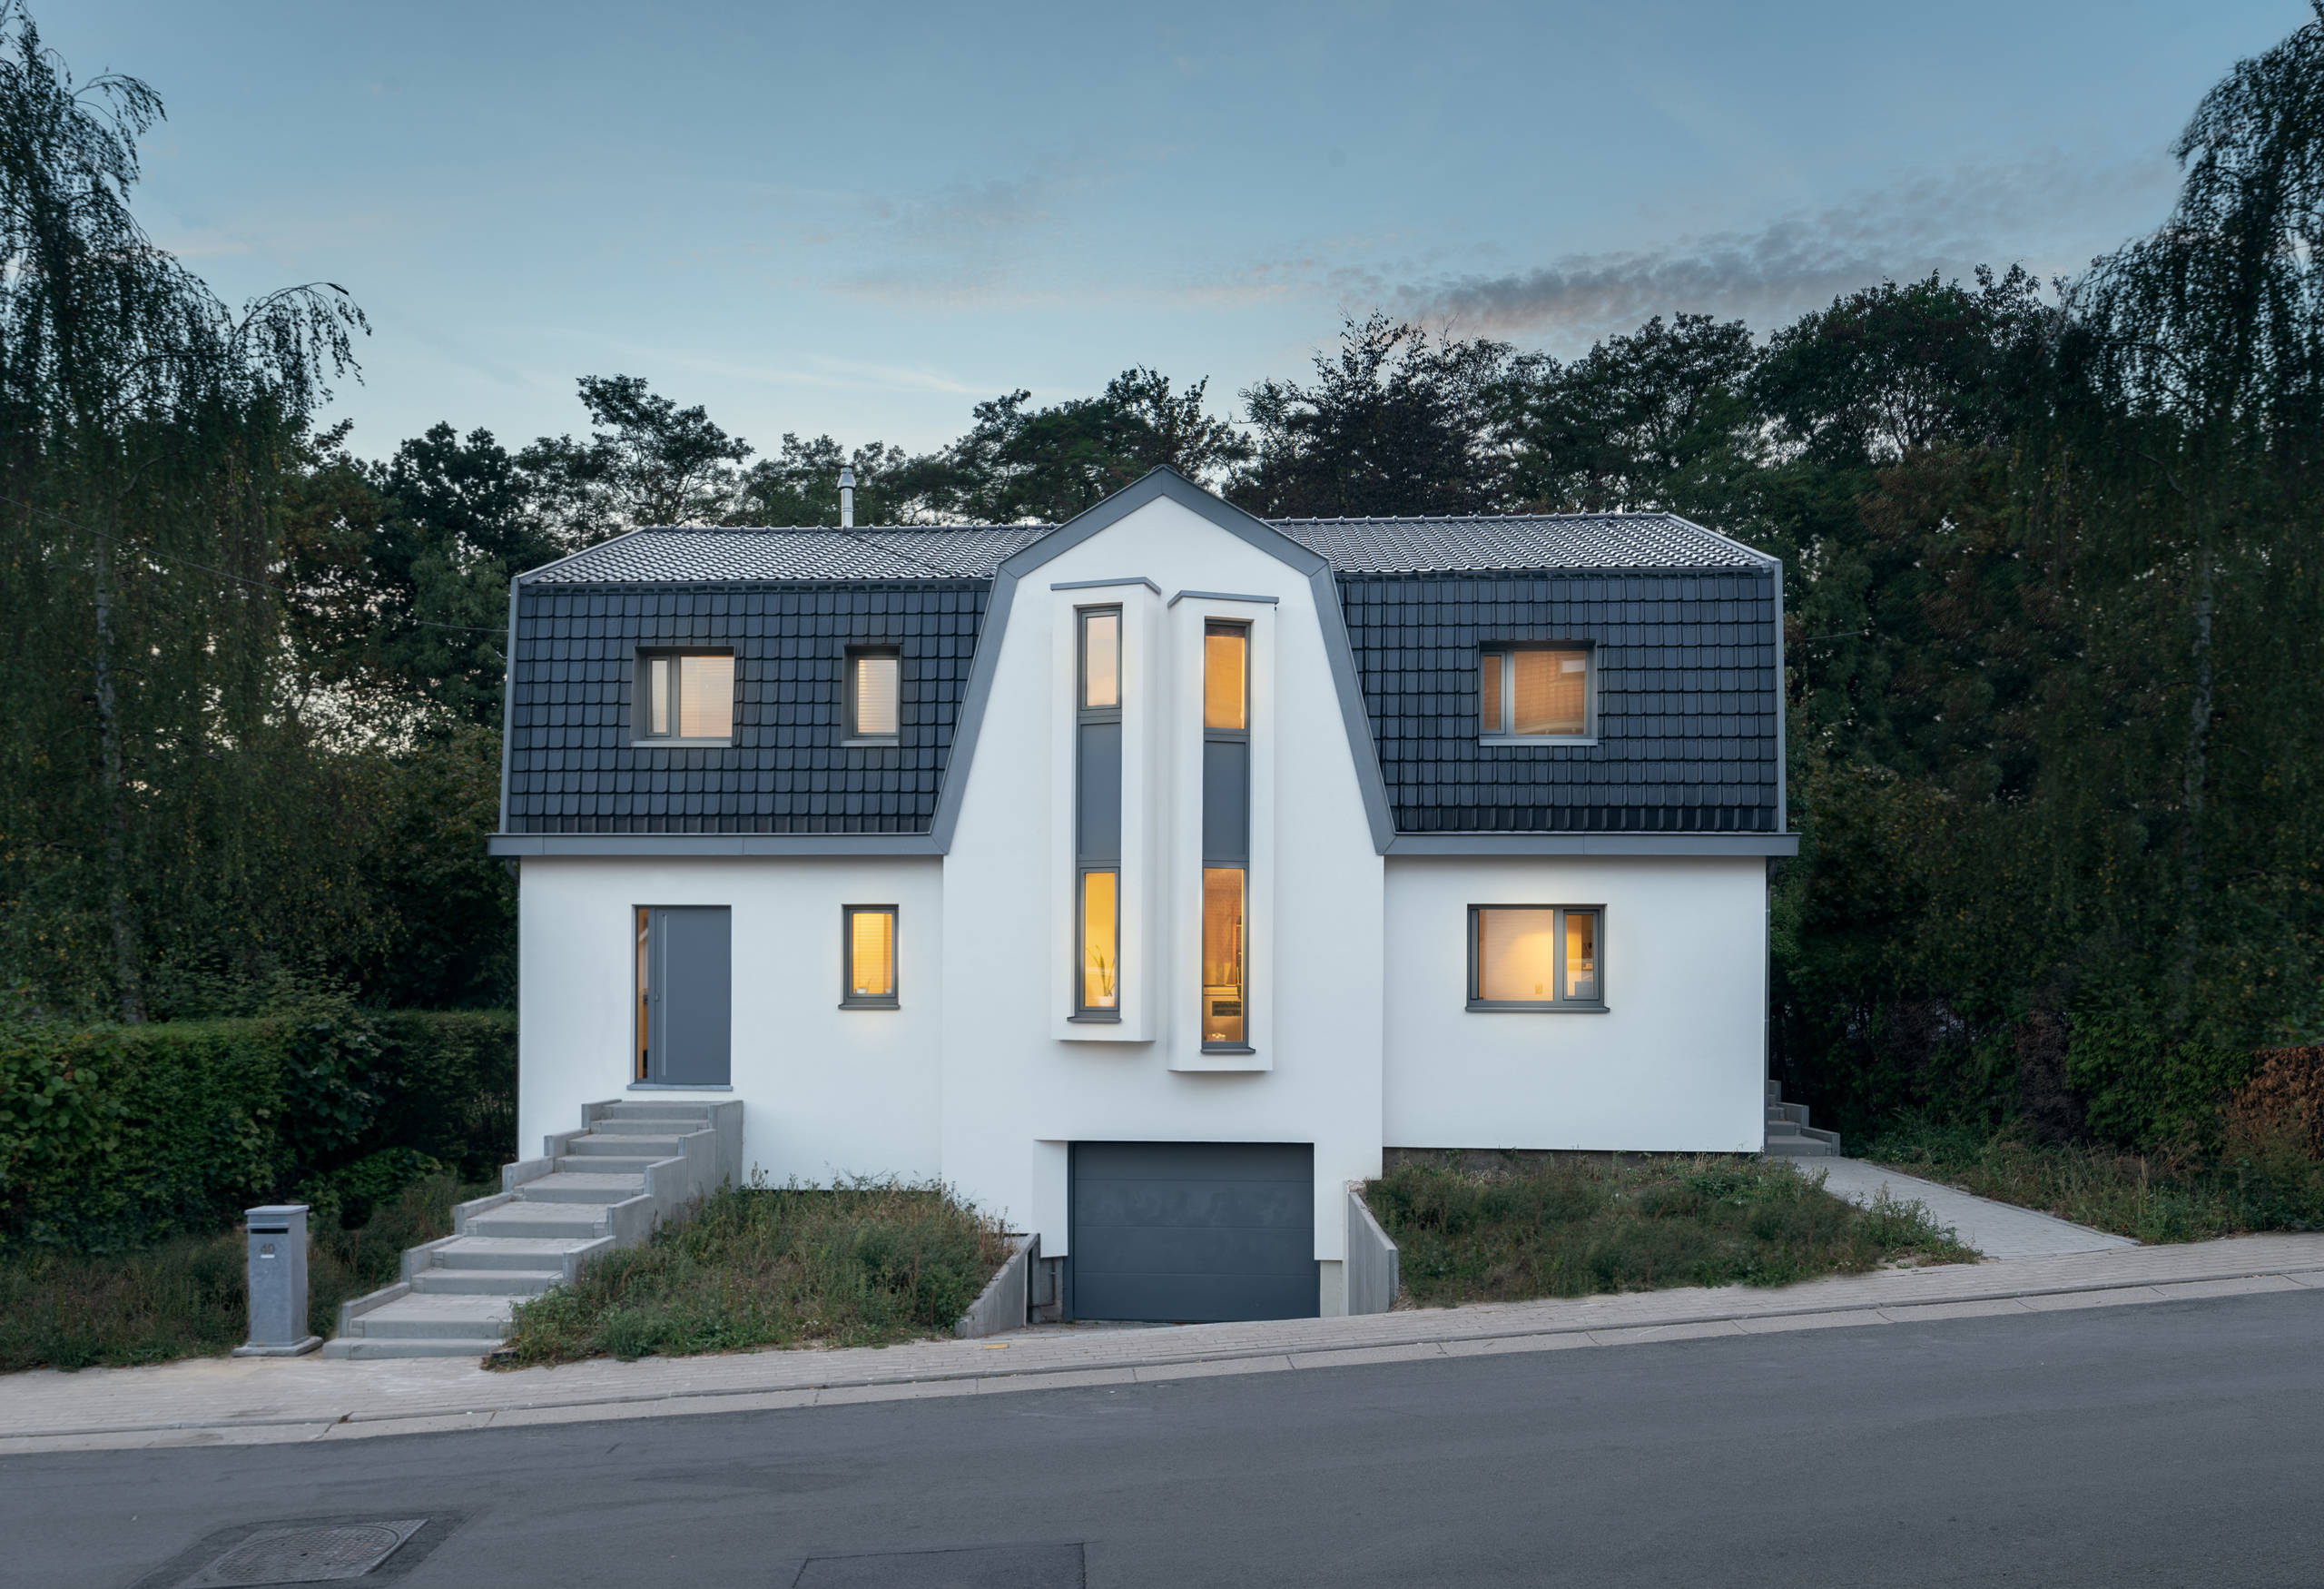 16 Spectacular Scandinavian Home Exterior Designs Youll Fall In Love With